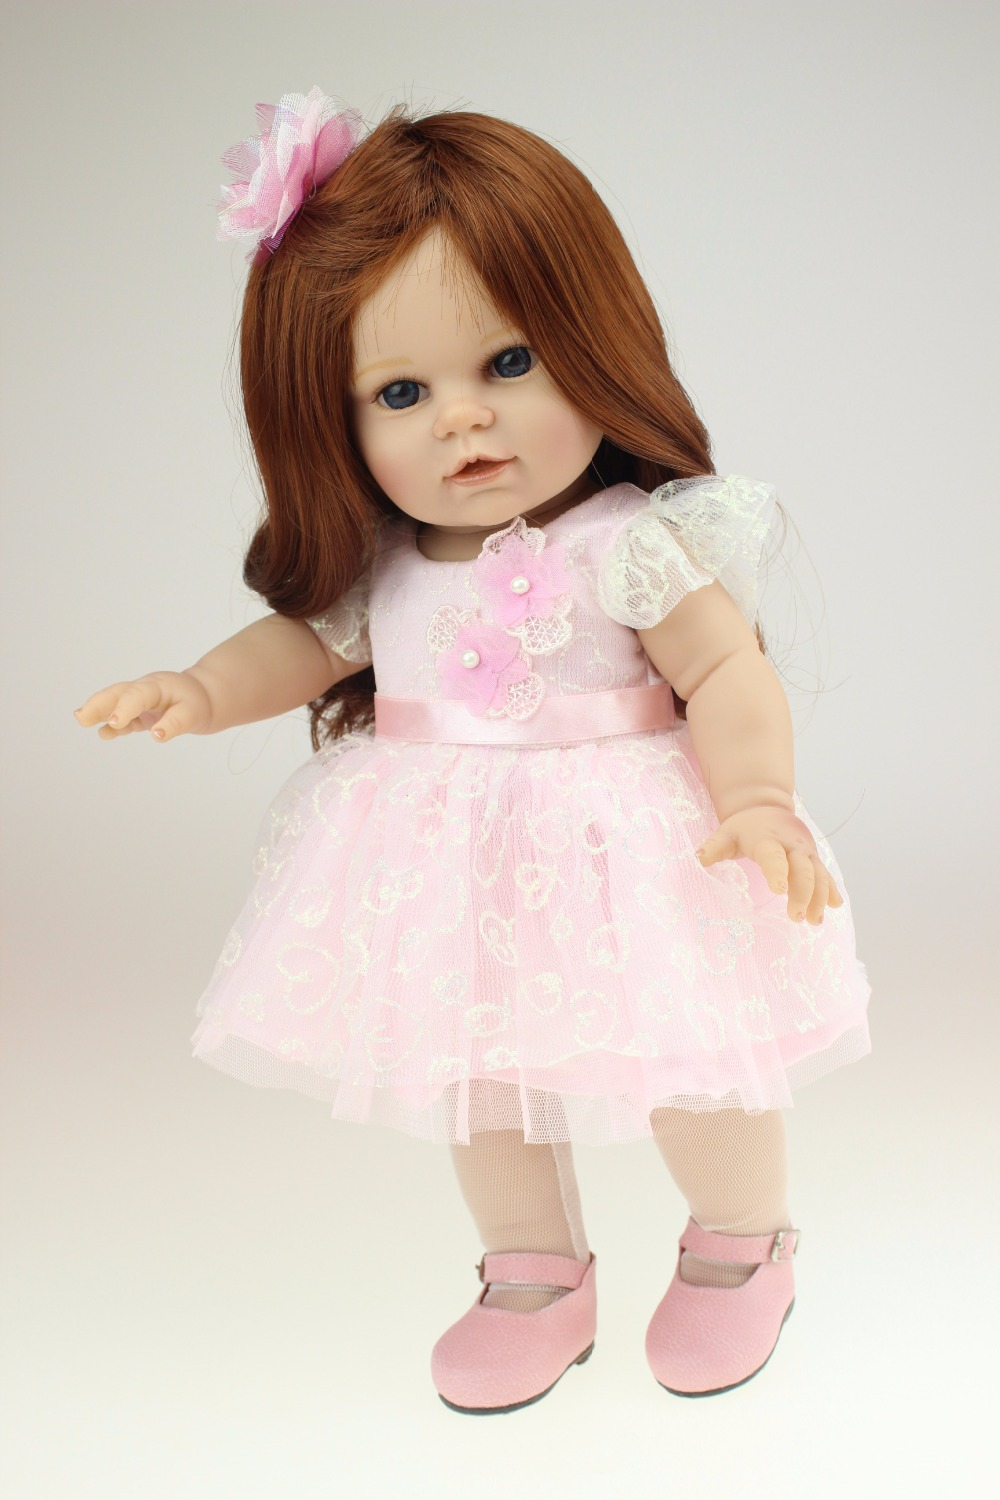 18inches fashion popular American Princess doll pink dress suit fashion play doll education toy for kidschristmas gifts toys18inches fashion popular American Princess doll pink dress suit fashion play doll education toy for kidschristmas gifts toys